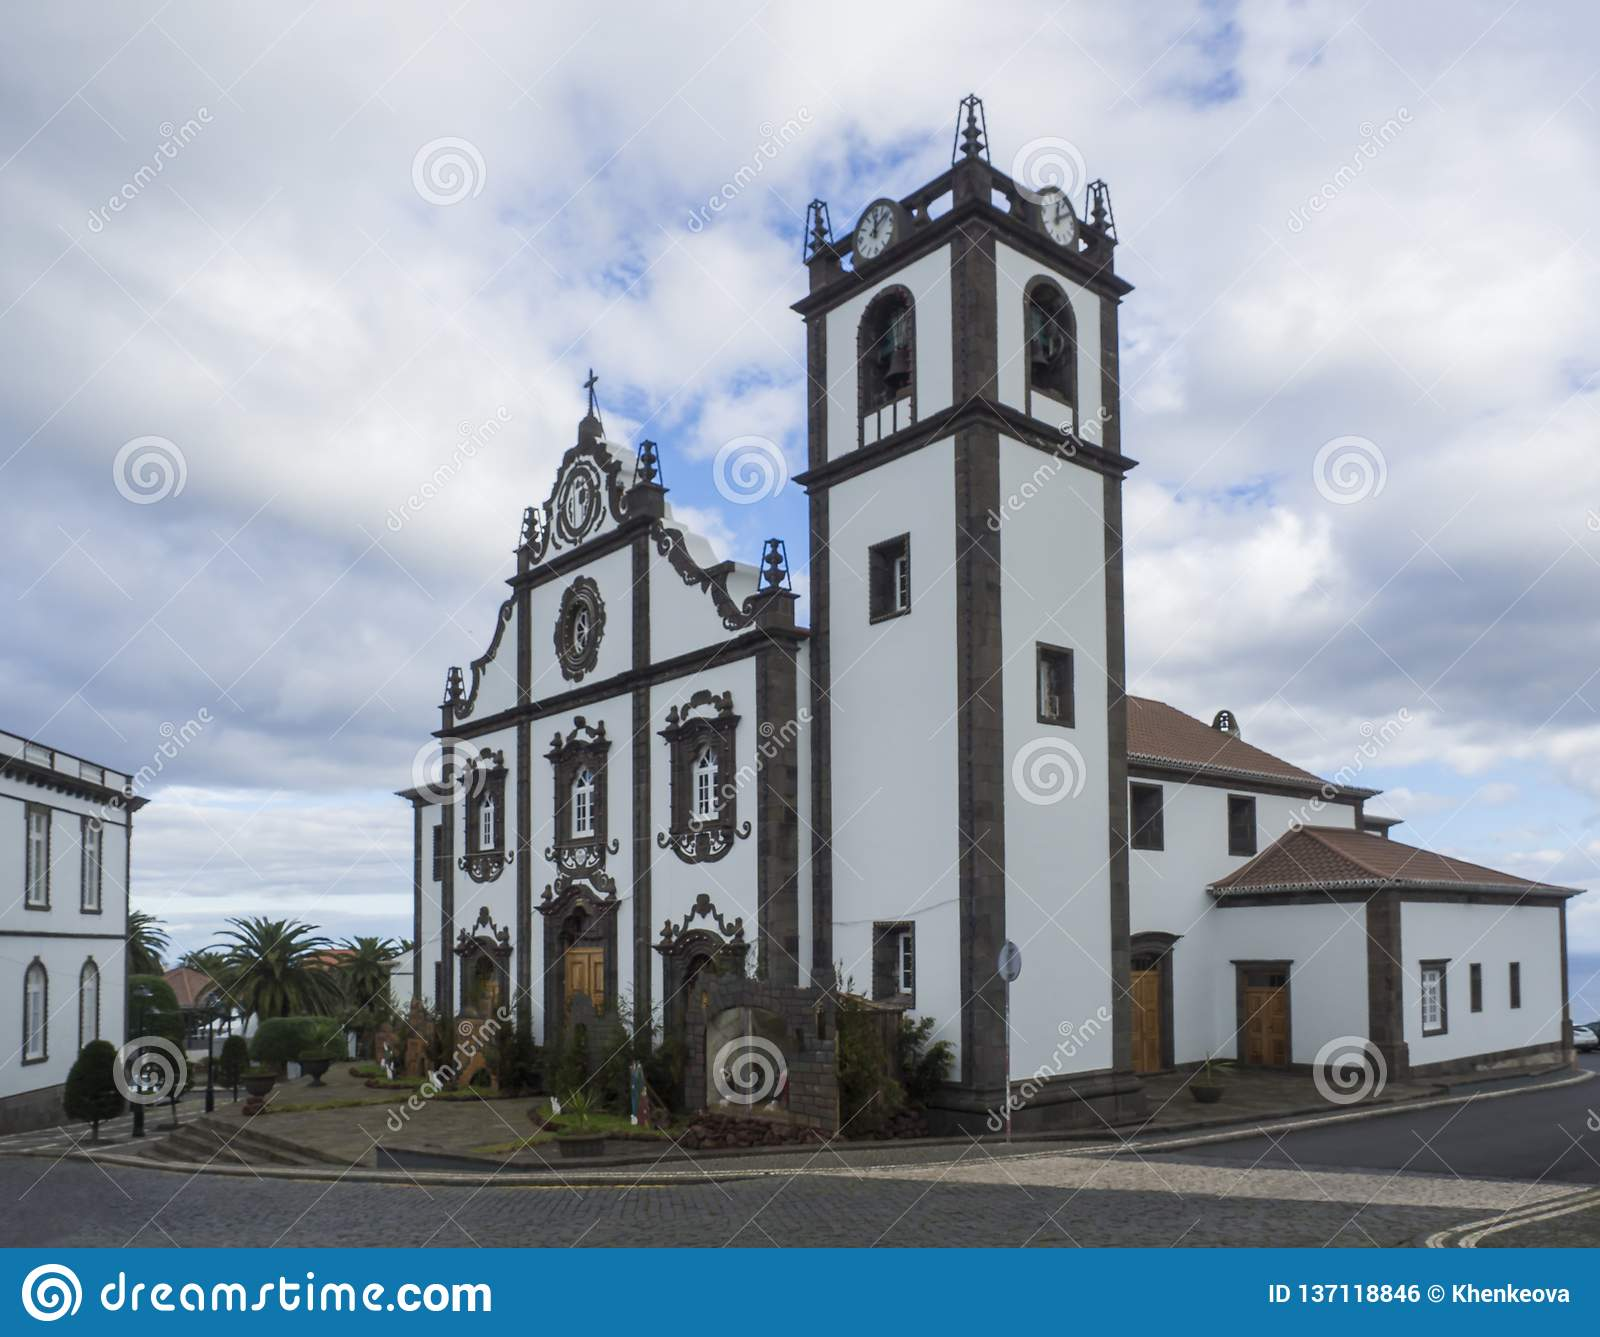 The Main Church Of Nordeste On The Island Of Sao Miguel With